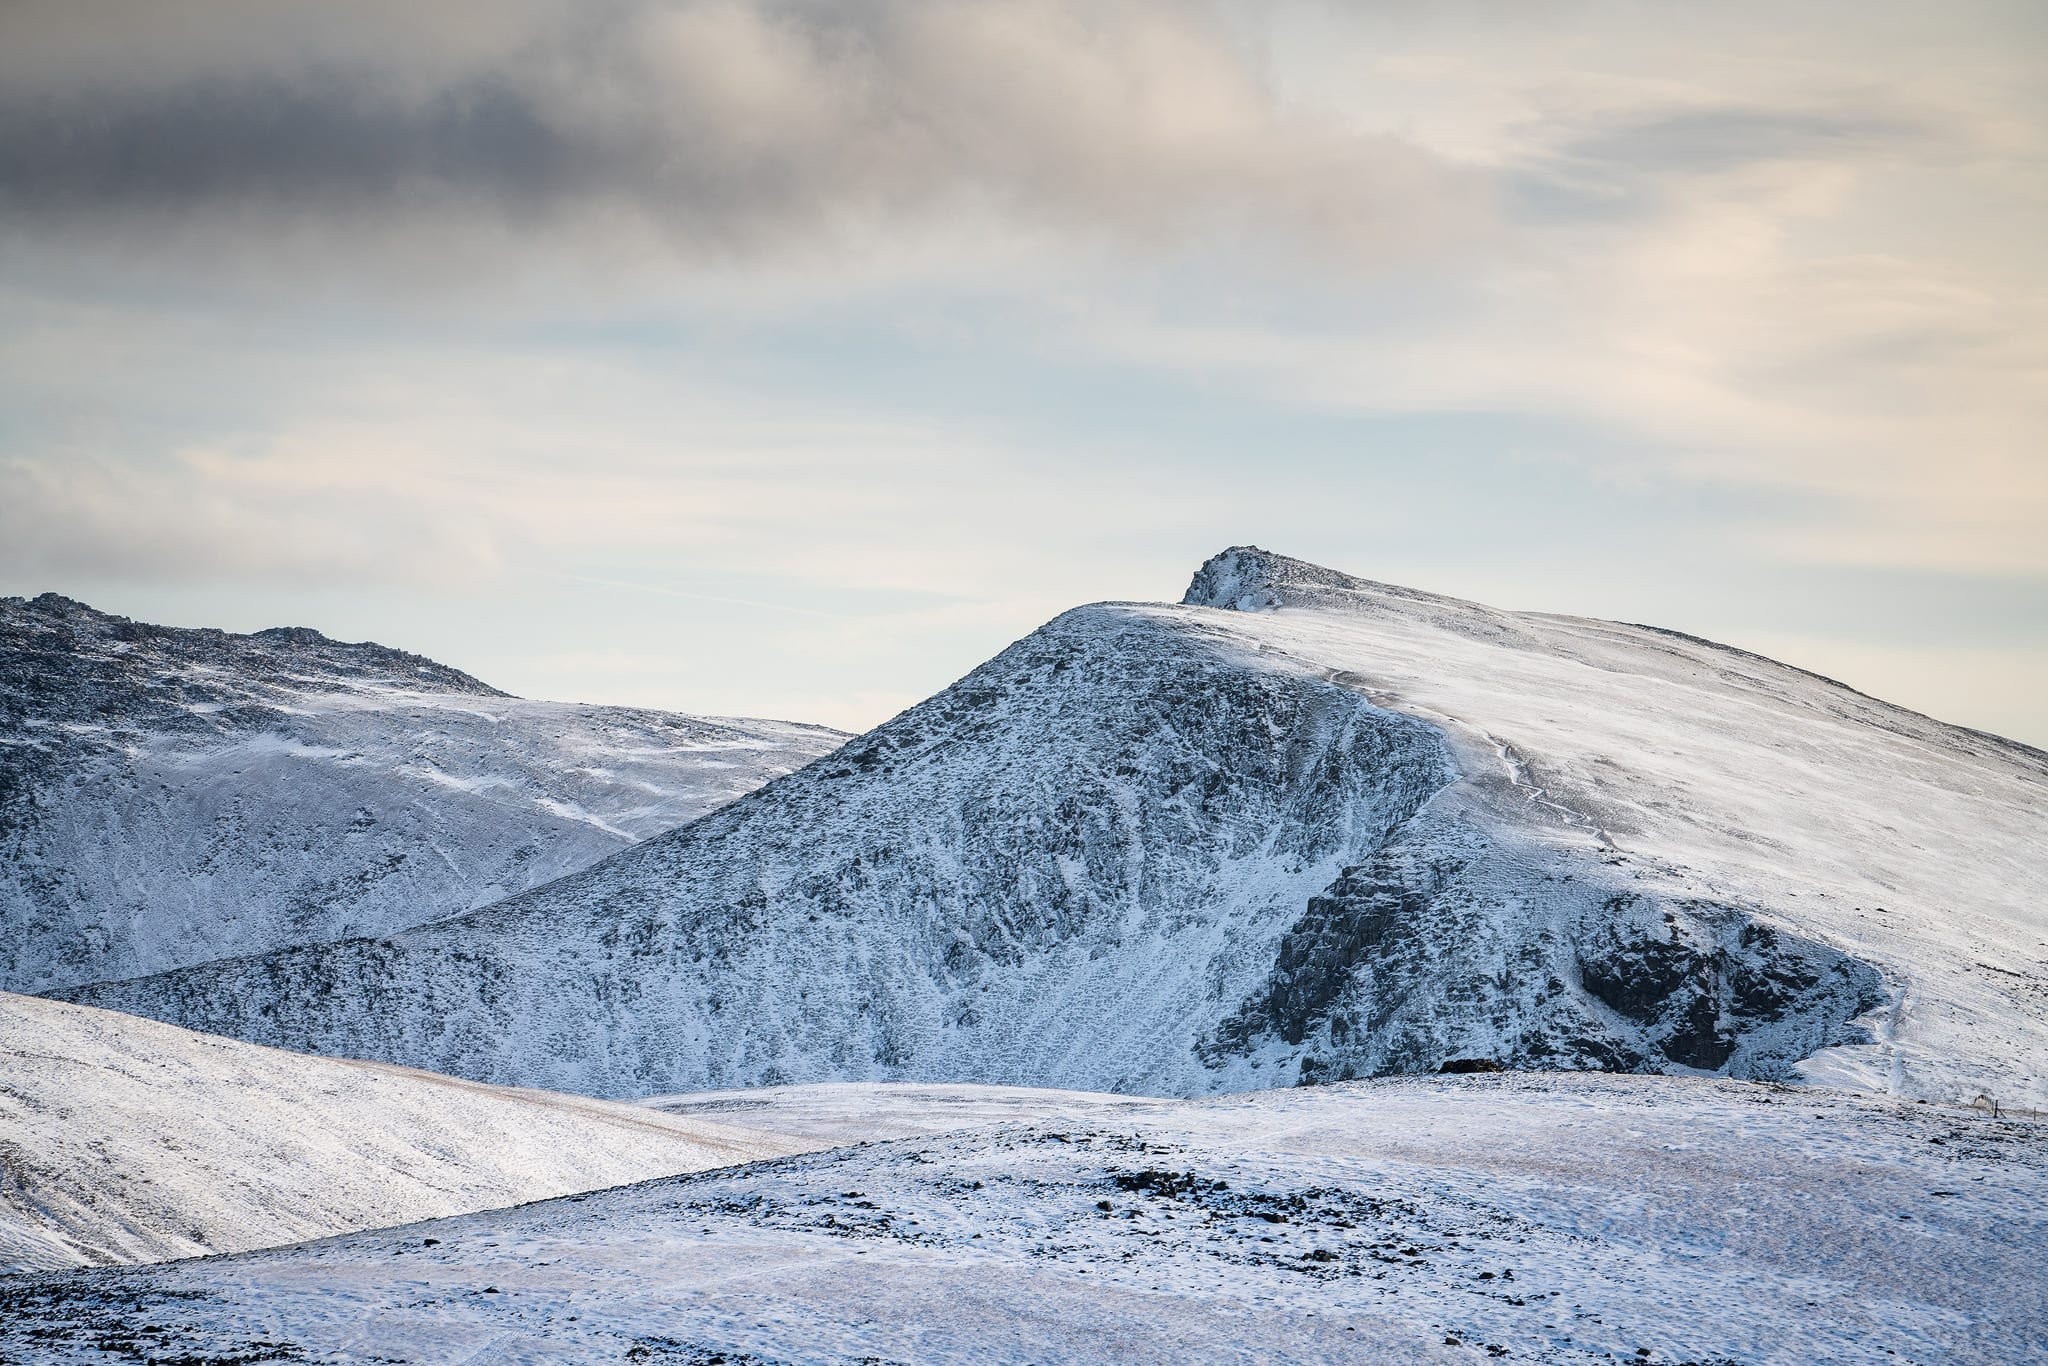 Winter Mountains in Snowdonia - Snowdonia Landscape Photography